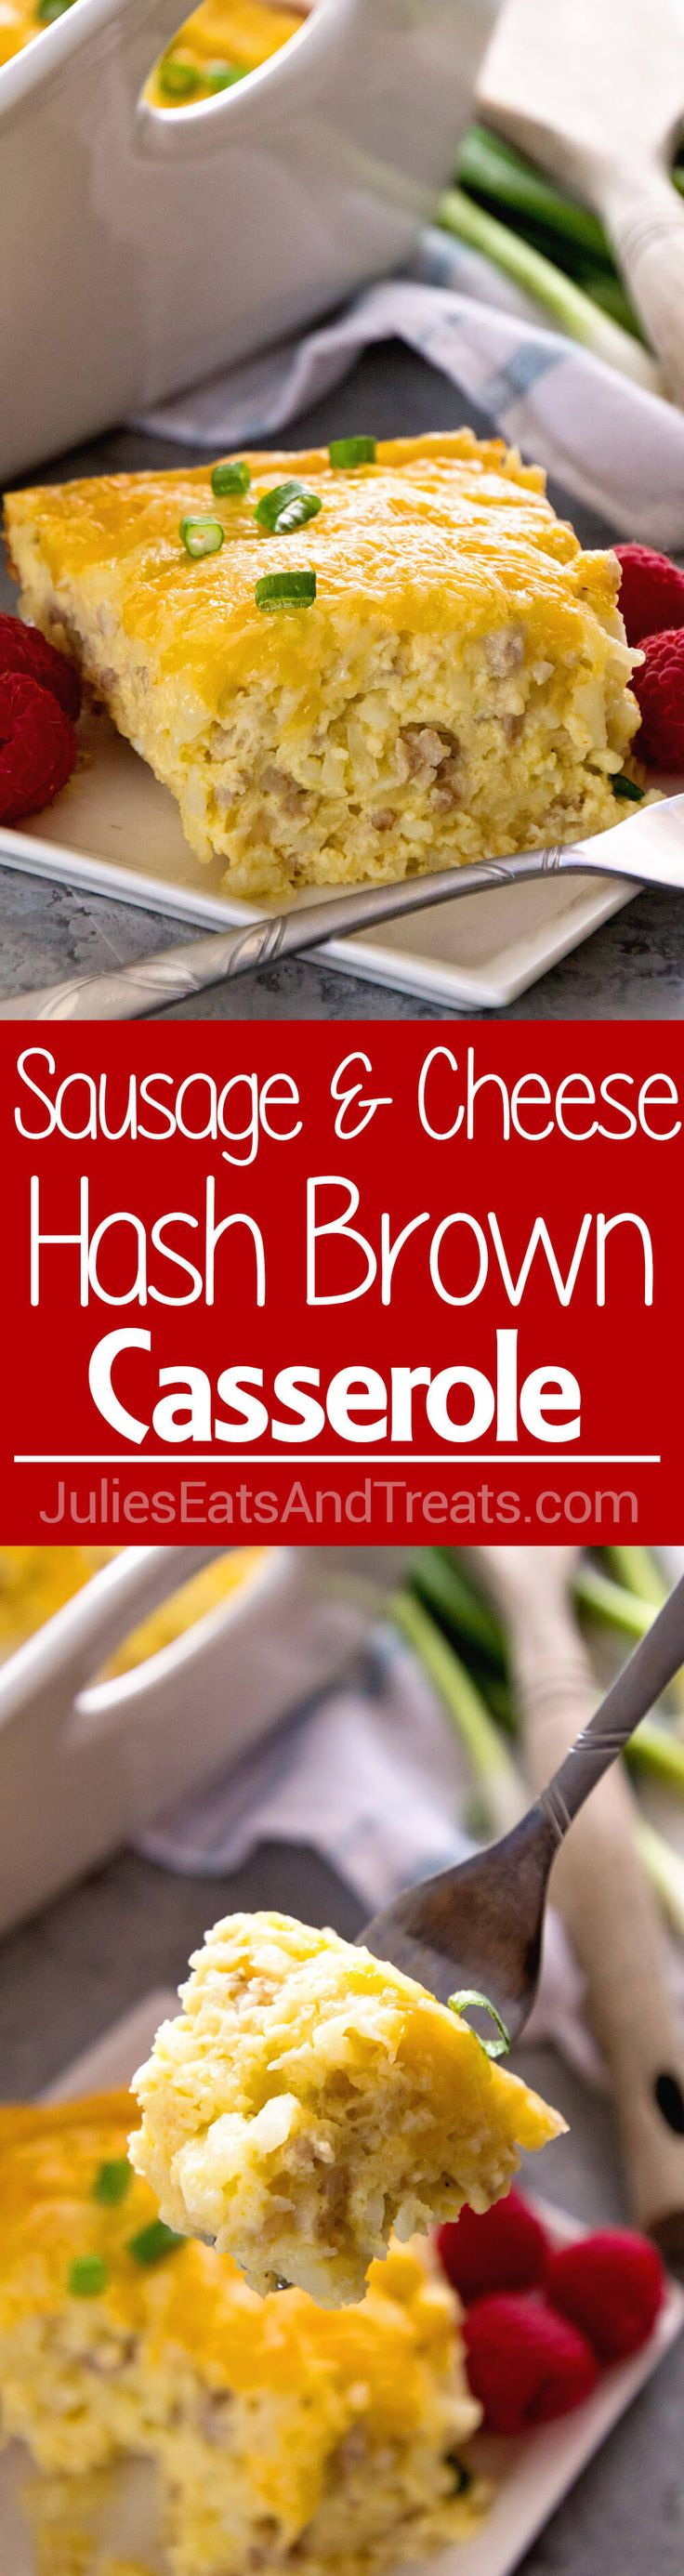 Sausage & Cheese Hash Brown Breakfast Casserole ~ Delicious Overnight Breakfast Casserole with Sausage, Hash Browns, Cheese and a Homemade Gravy! The BEST Breakfast Casserole Ever! via @julieseats